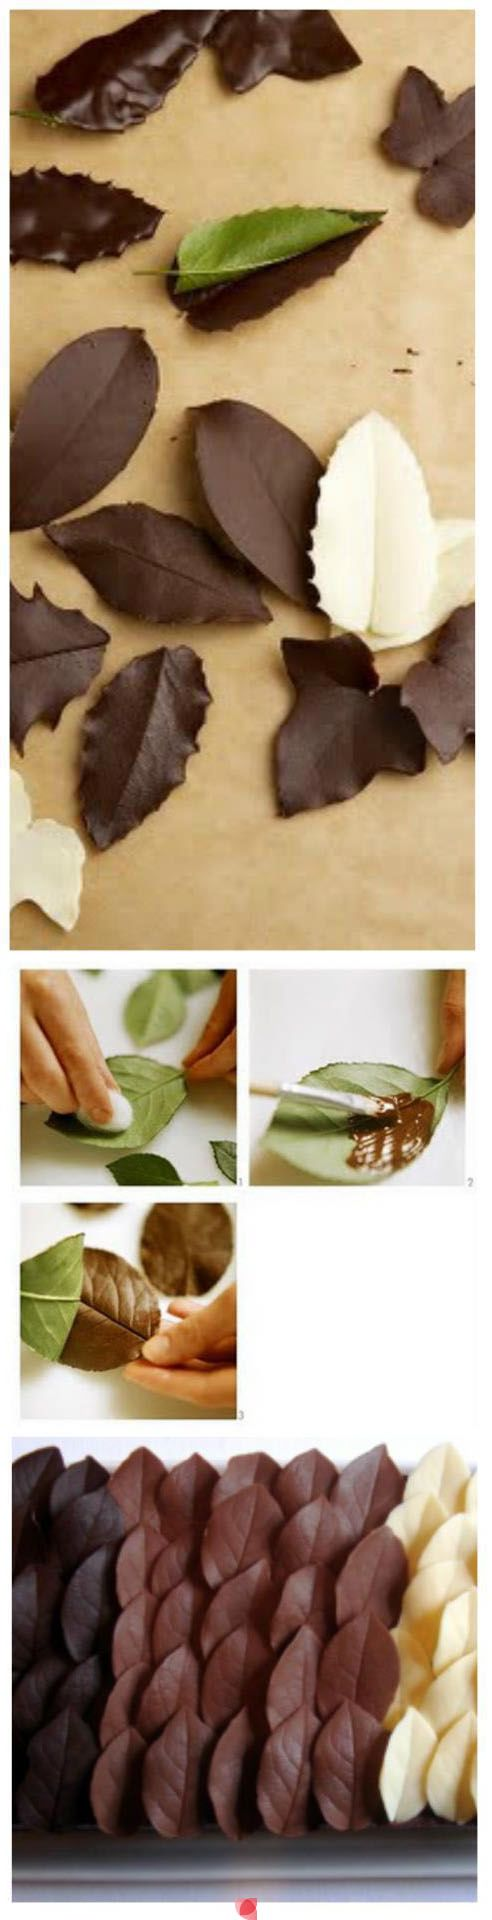 Chocolate Leaves How To Make Them In 30 Seconds